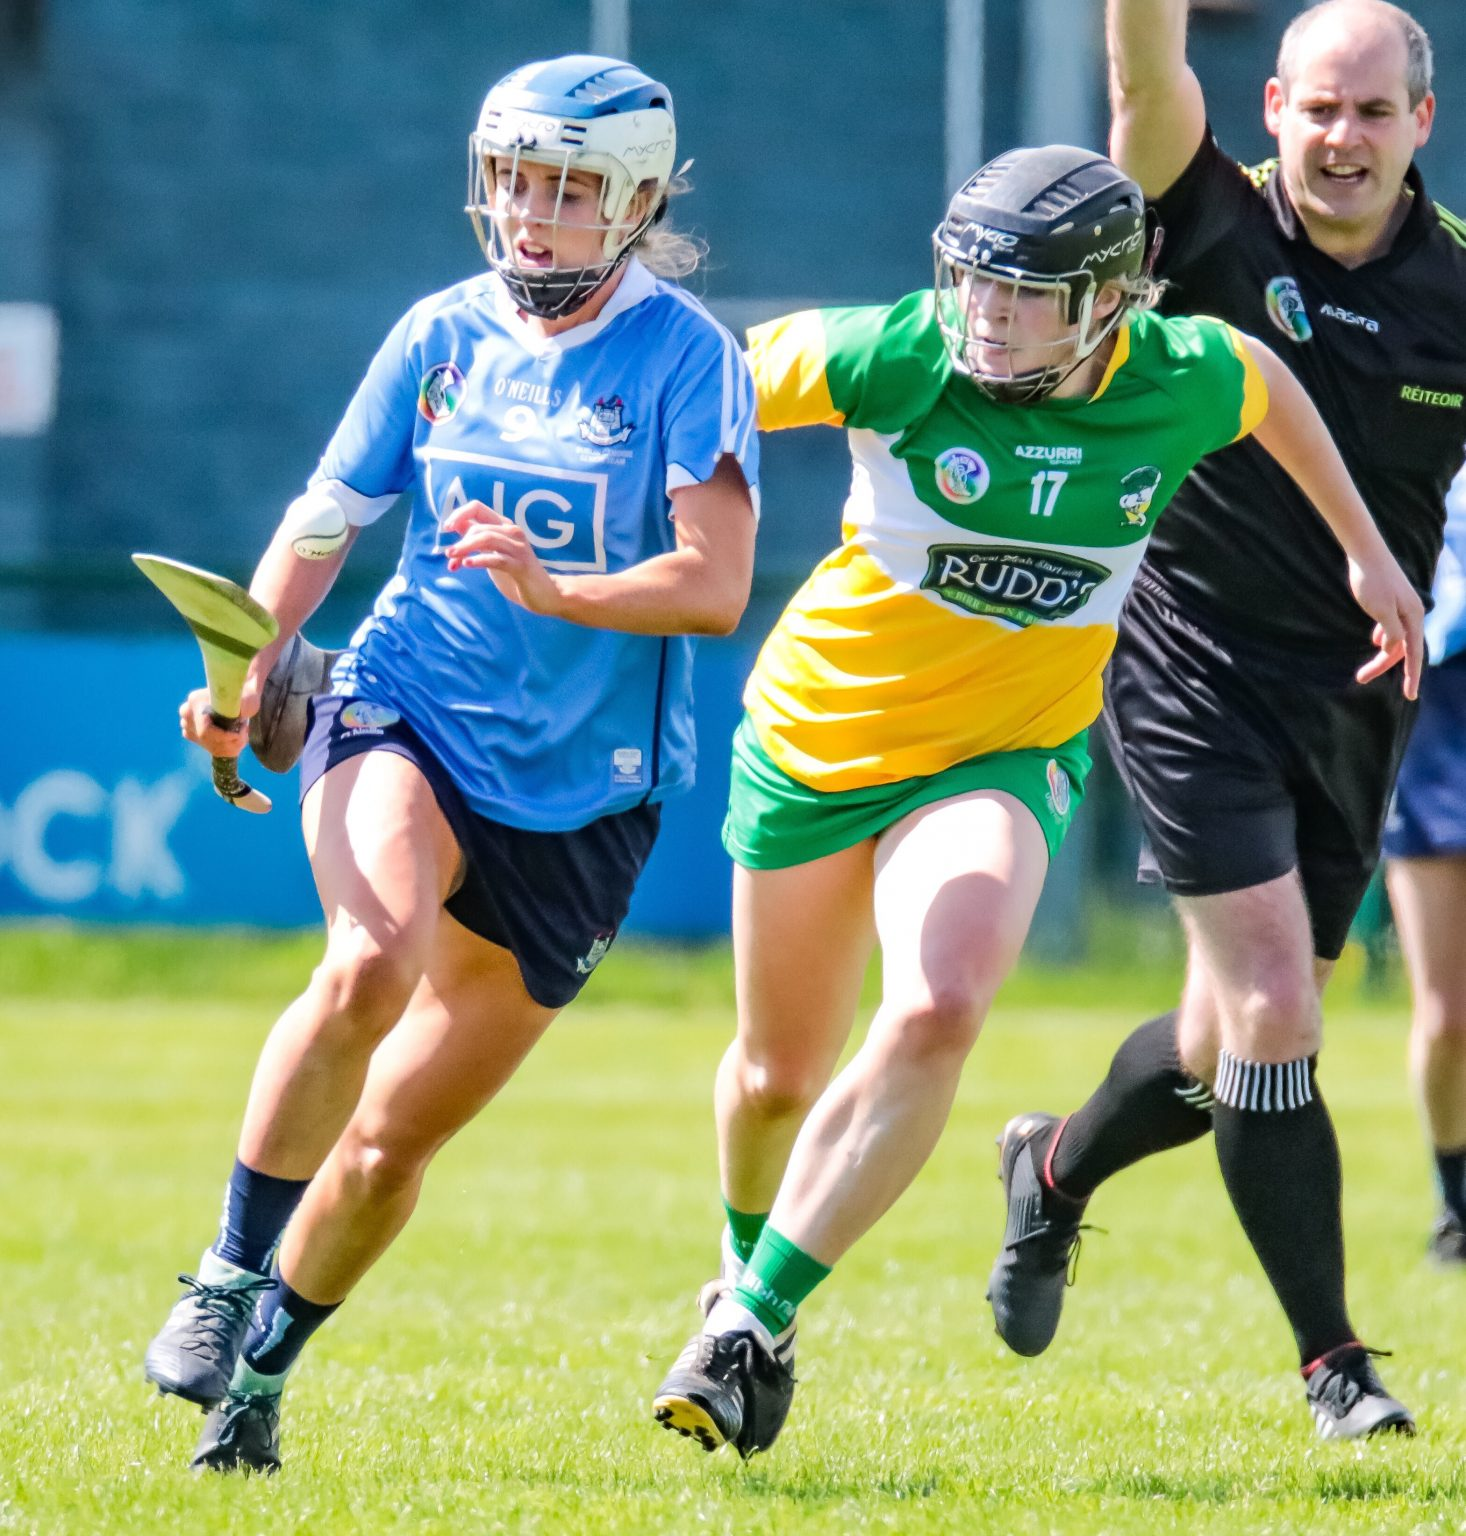 Dublin Player In a Sky Blue Jersey running away from an Offaly Player In a green, white and yellow jersey bouncing a white ball on a hurl